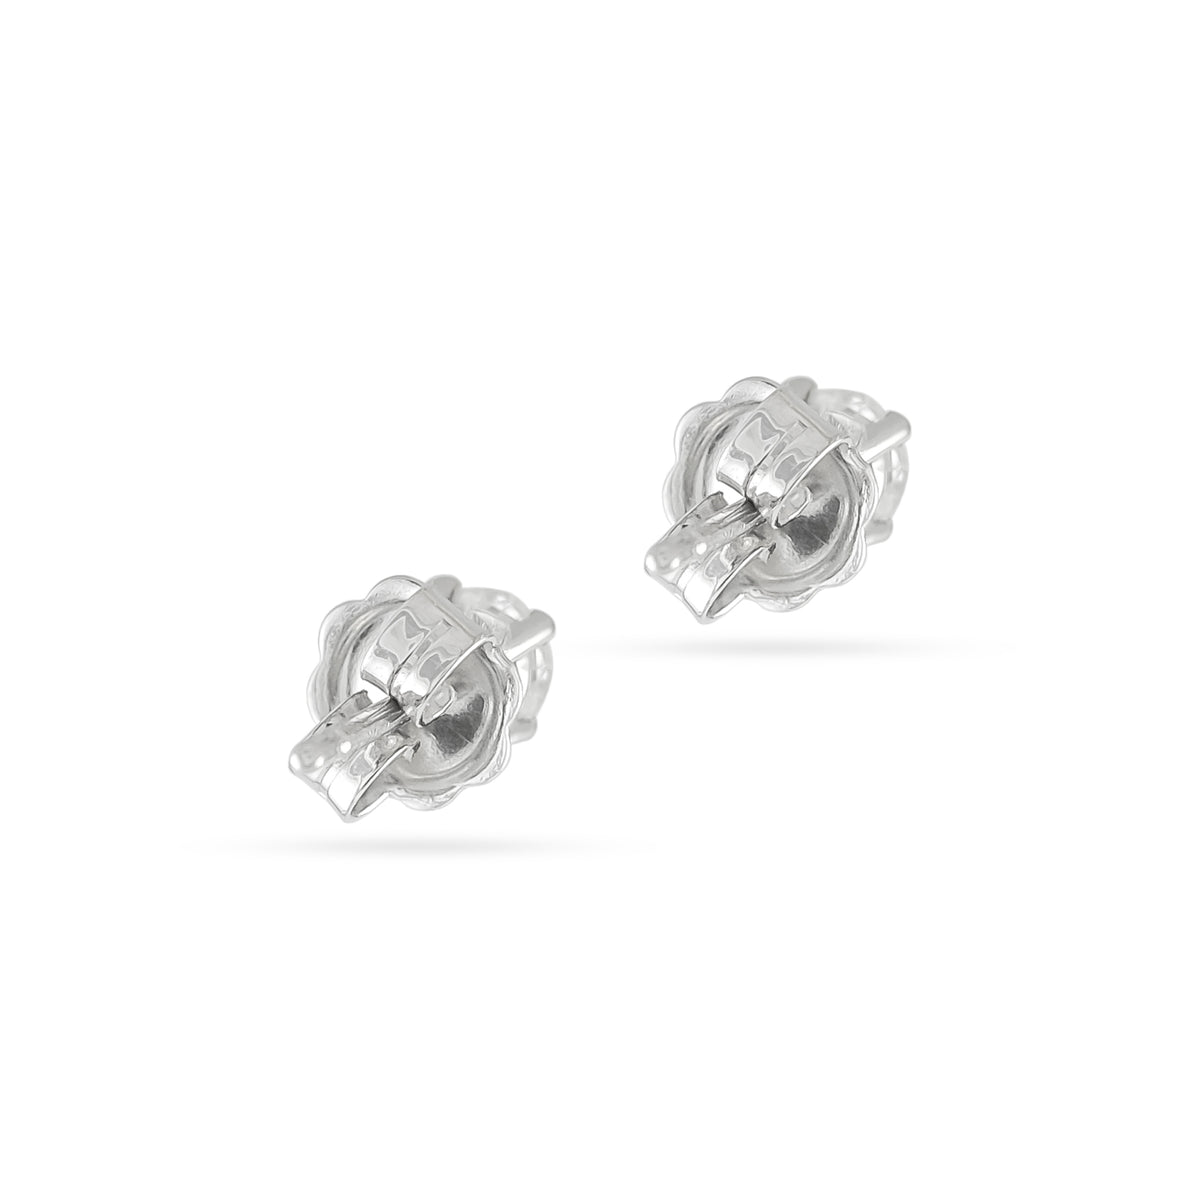 0.36ct 18ct White Gold Diamond Stud Earrings